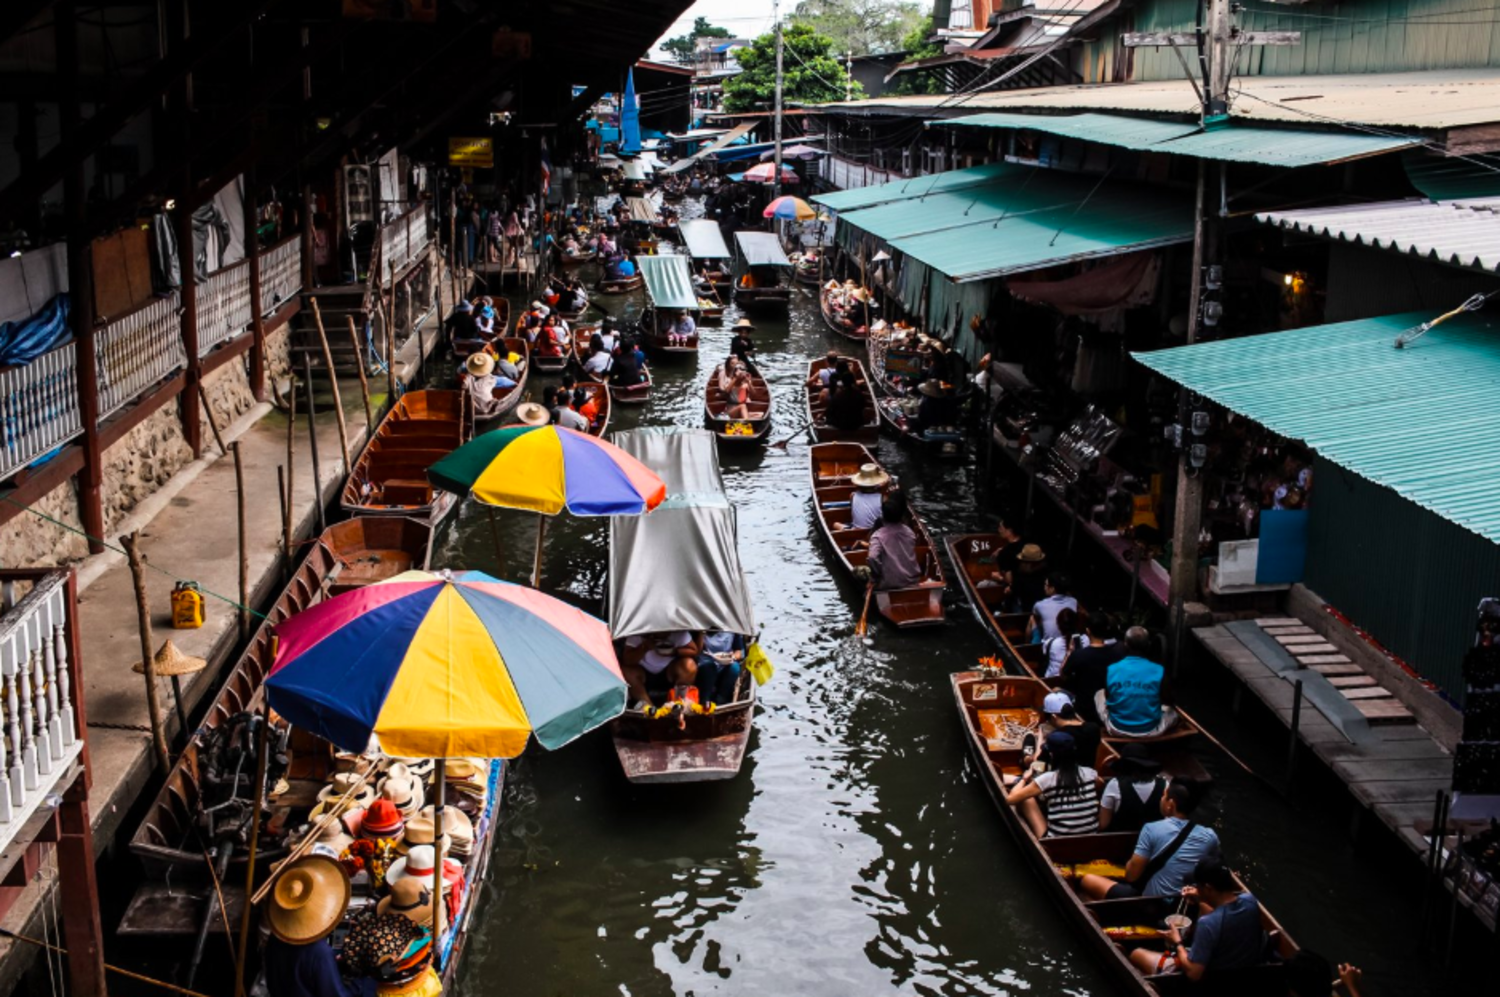 Just to be clear: when traveling internationally, avoid drinking from water in canals. You'll likely be purifying much cleaner looking tap water, which can have invisible microbes which could make you sick.   Photo by    Frida Aguilar Estrada    on    Unsplash